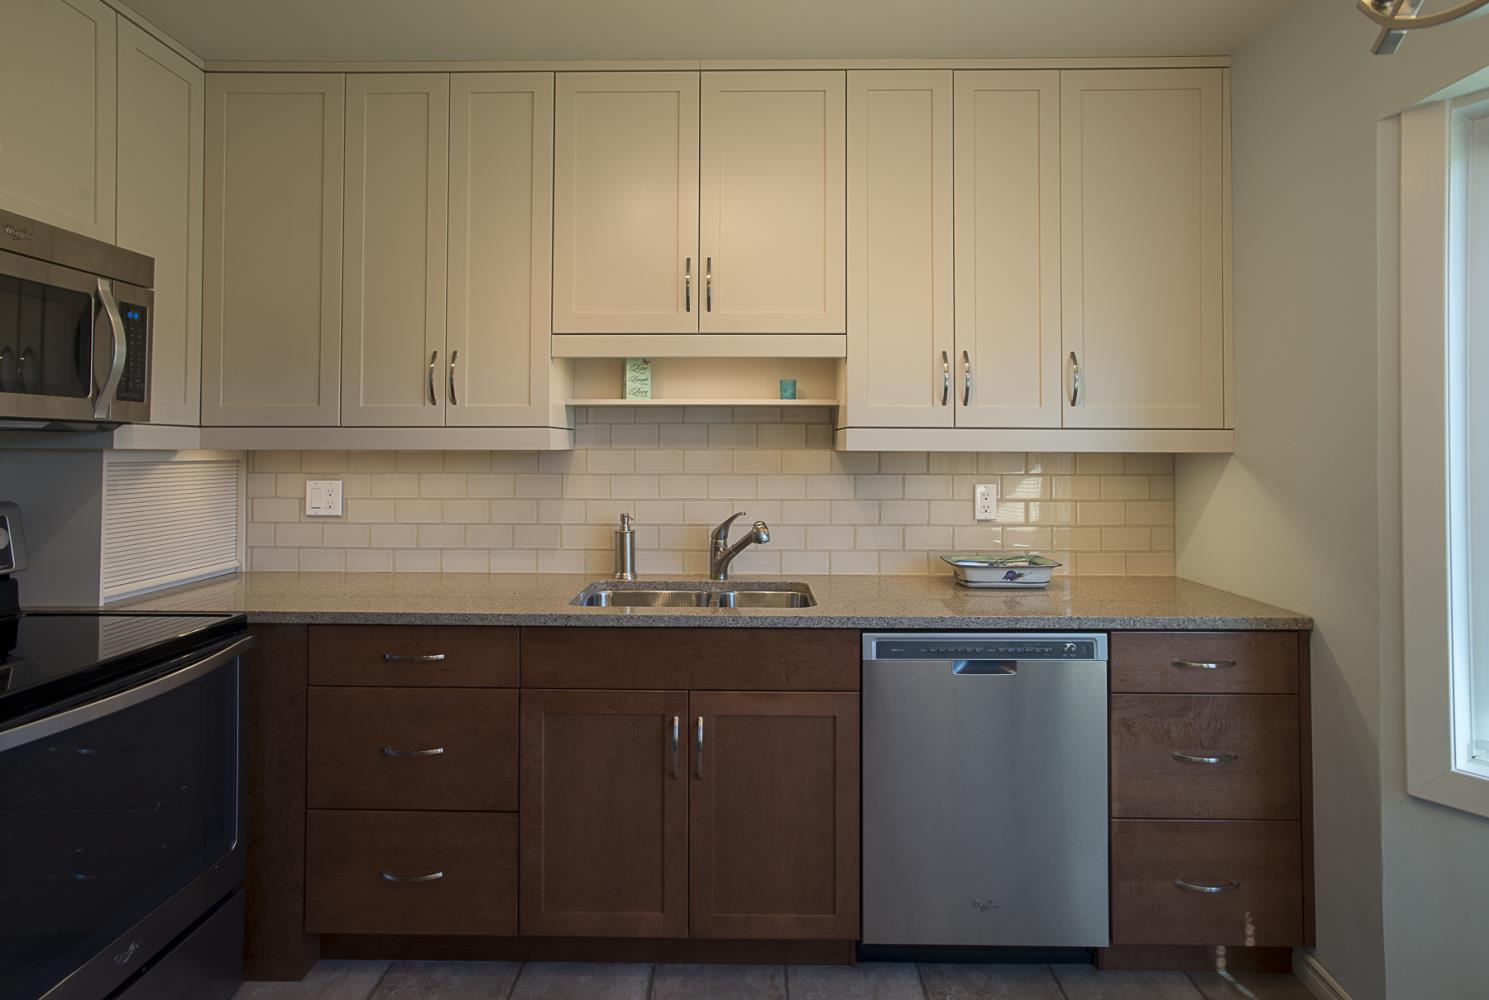 Kitchen Remodel Des Moines Style Beauteous Cabinet Styles Decorating Inspiration